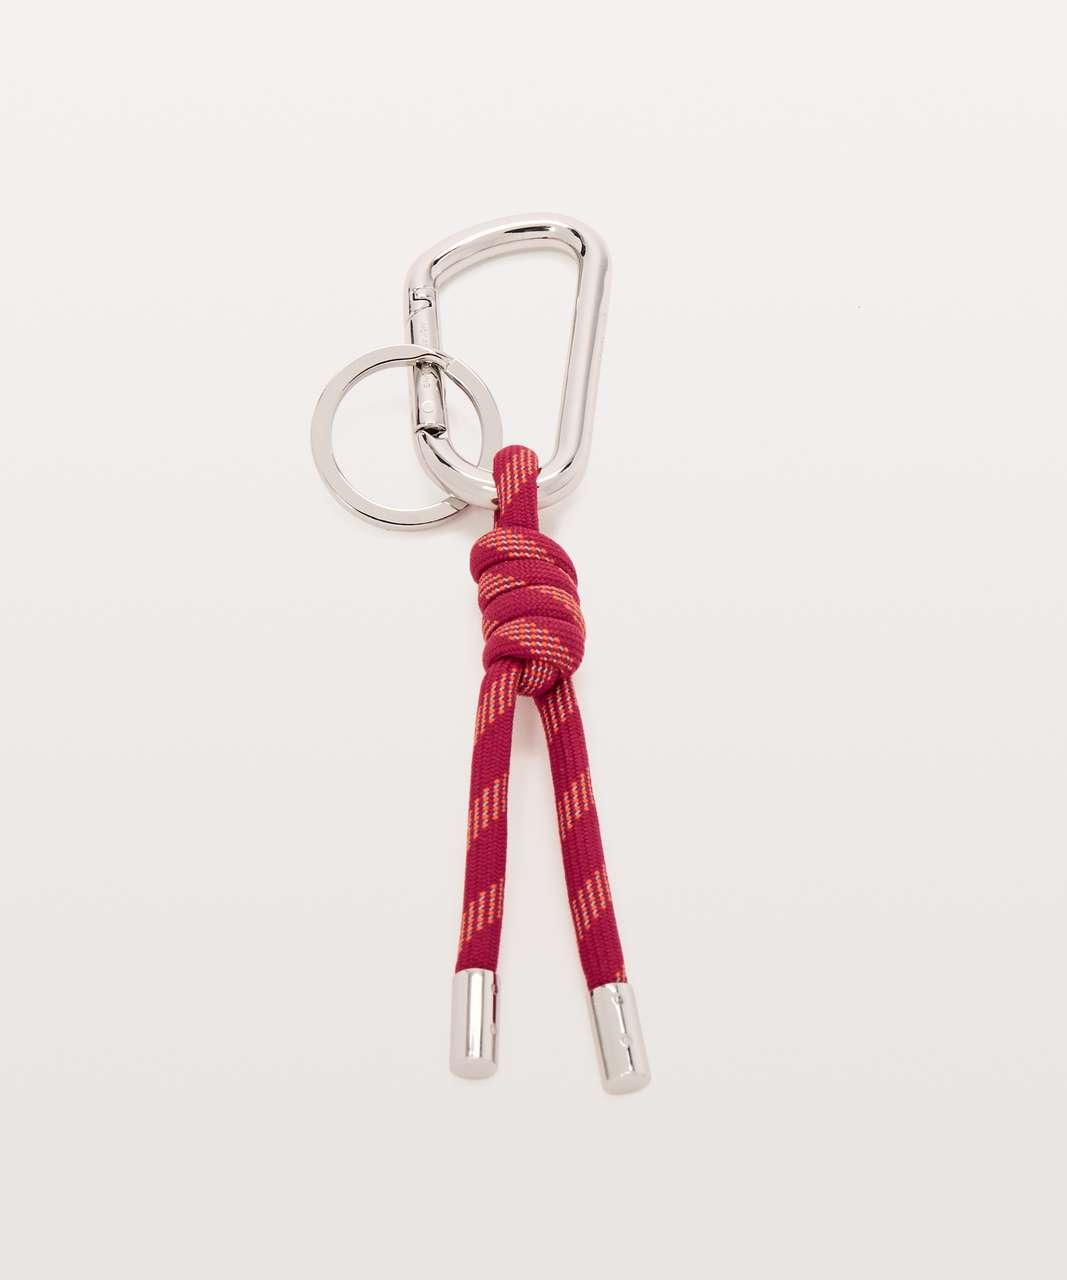 Lululemon You Hold The Key Chain - Ruby Red